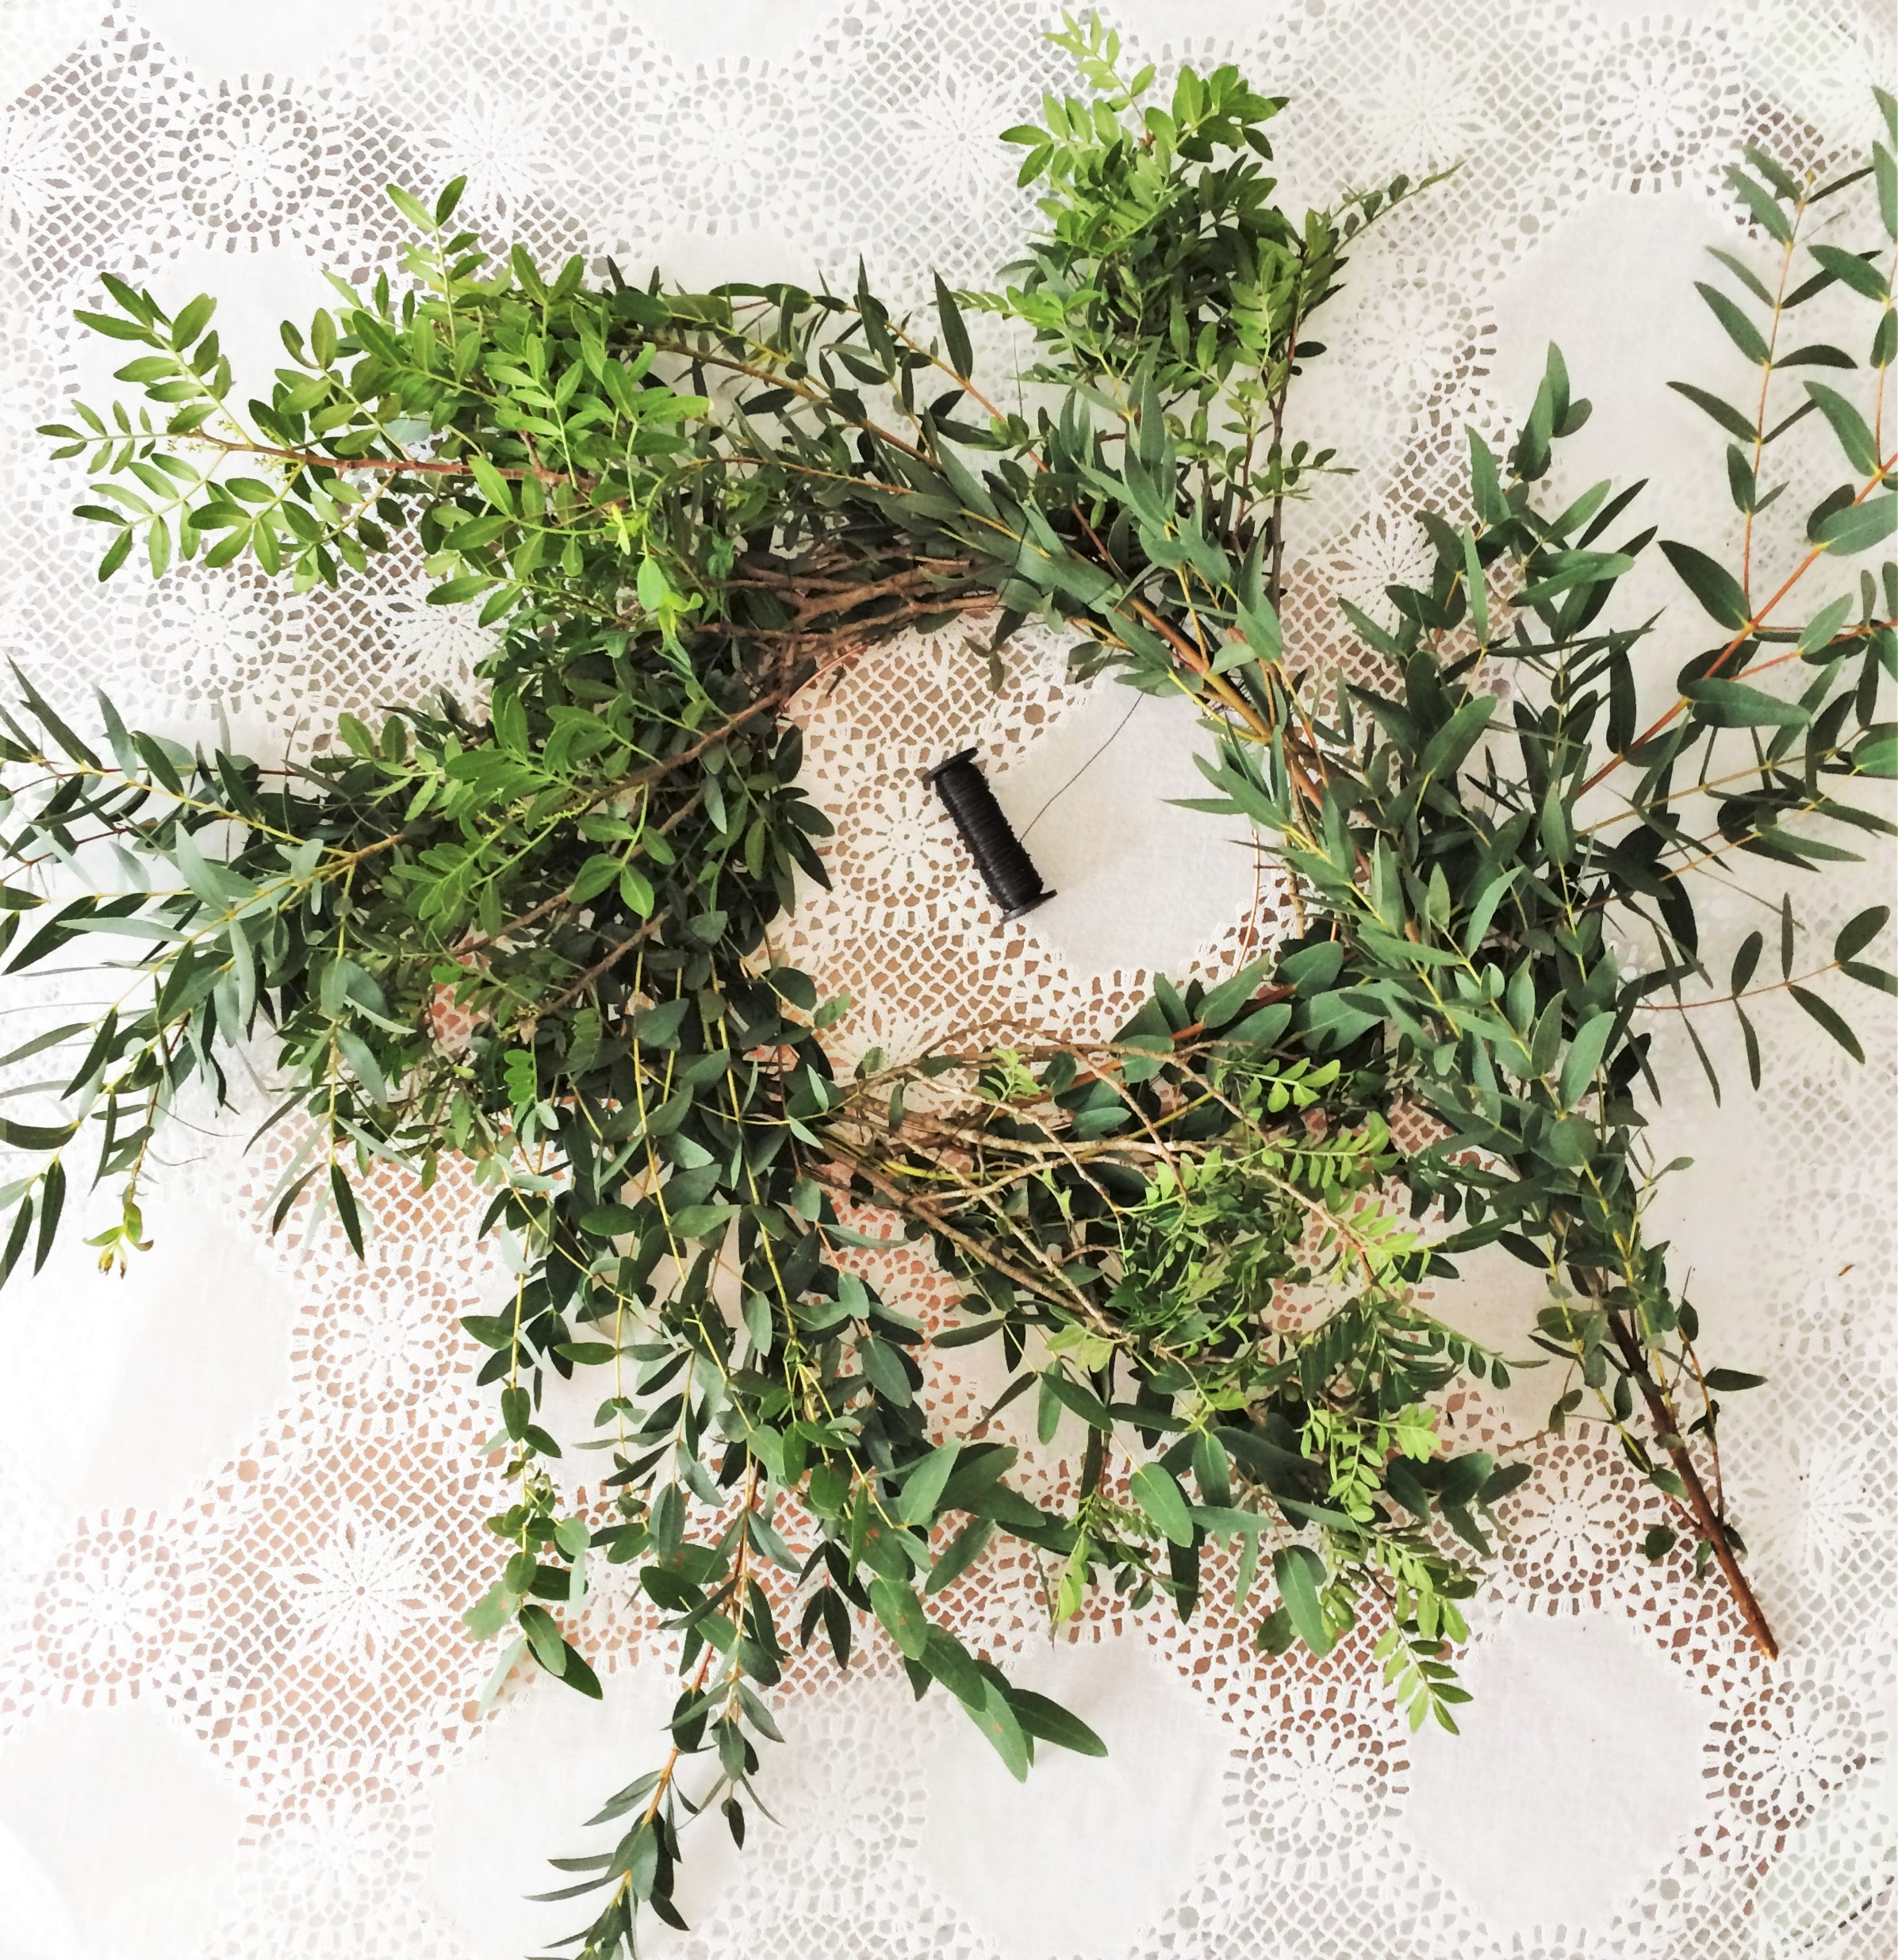 Webb-and-Farrer-Brighton-Florist-Sussex-Wedding-Flowers-How-to-make-a-foliage-wreath-DIY-tutorial (8).JPG